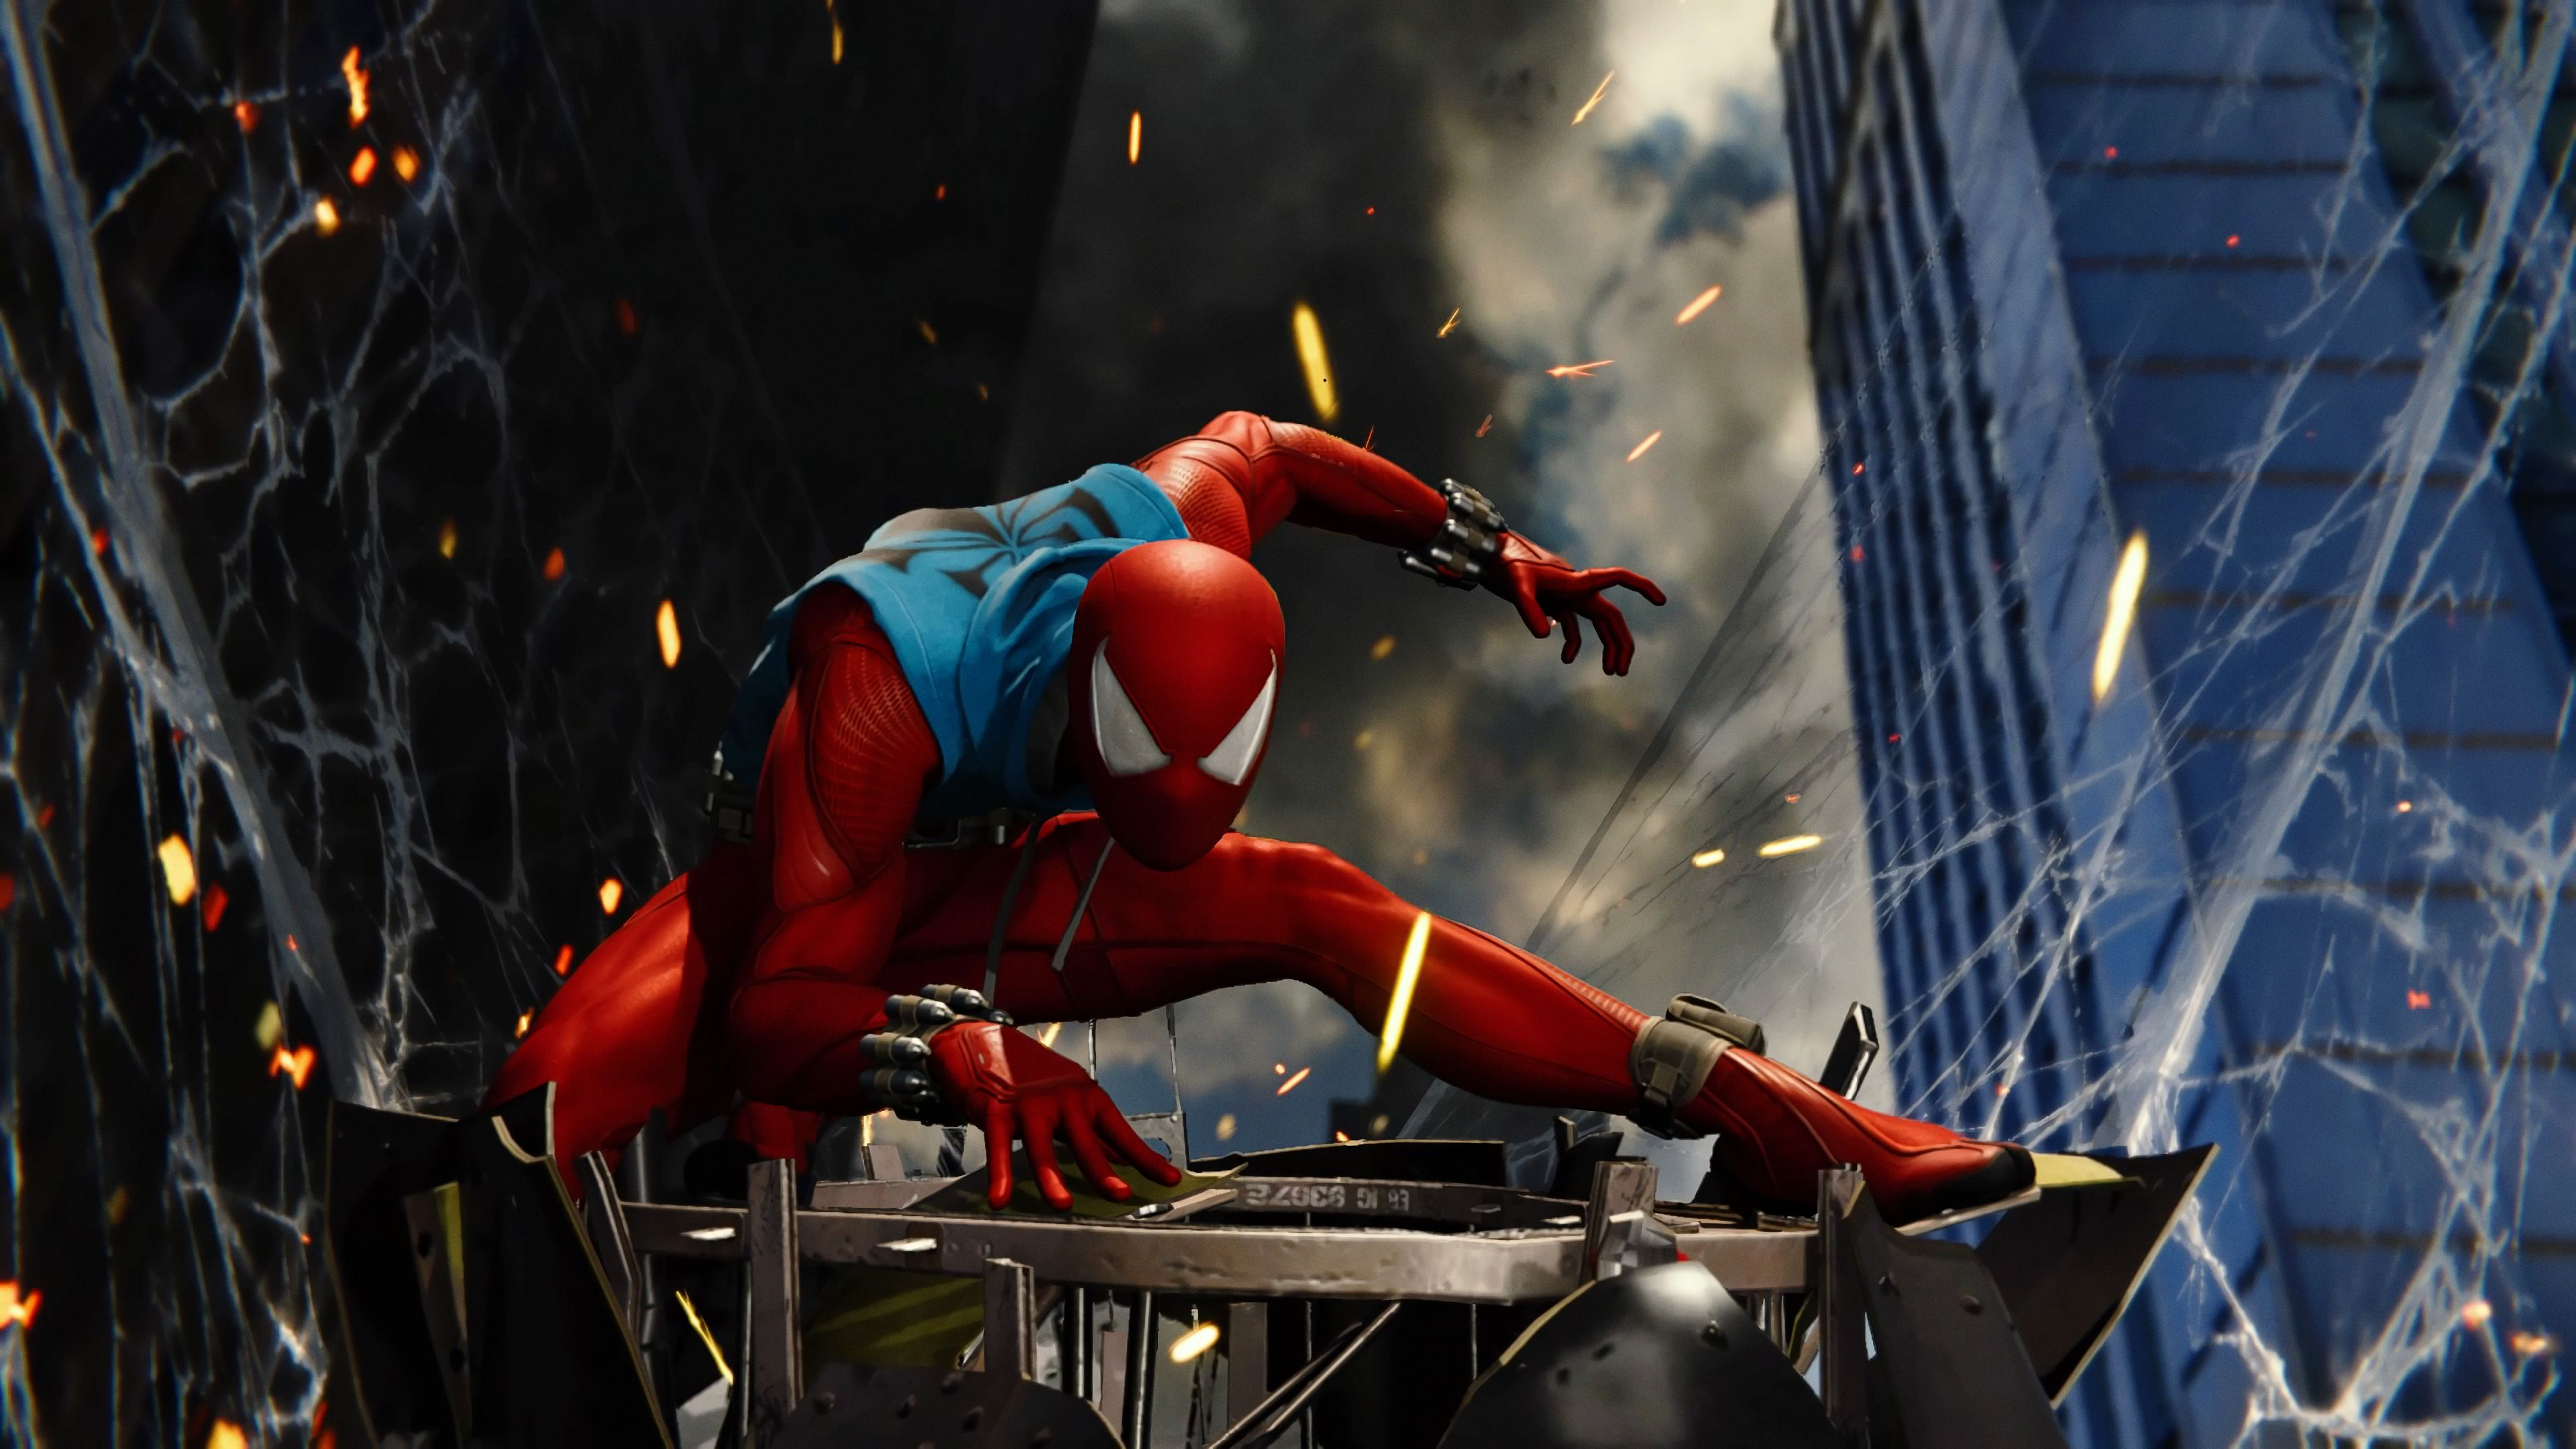 Scarlet Spider Ps4 Game 4k Spiderman Ps4 Wallpapers Scarlet Spider Wallpapers Ps4 Games Wallpapers Hd Wallpa Spiderman Spiderman Ps4 Spiderman Ps4 Wallpaper